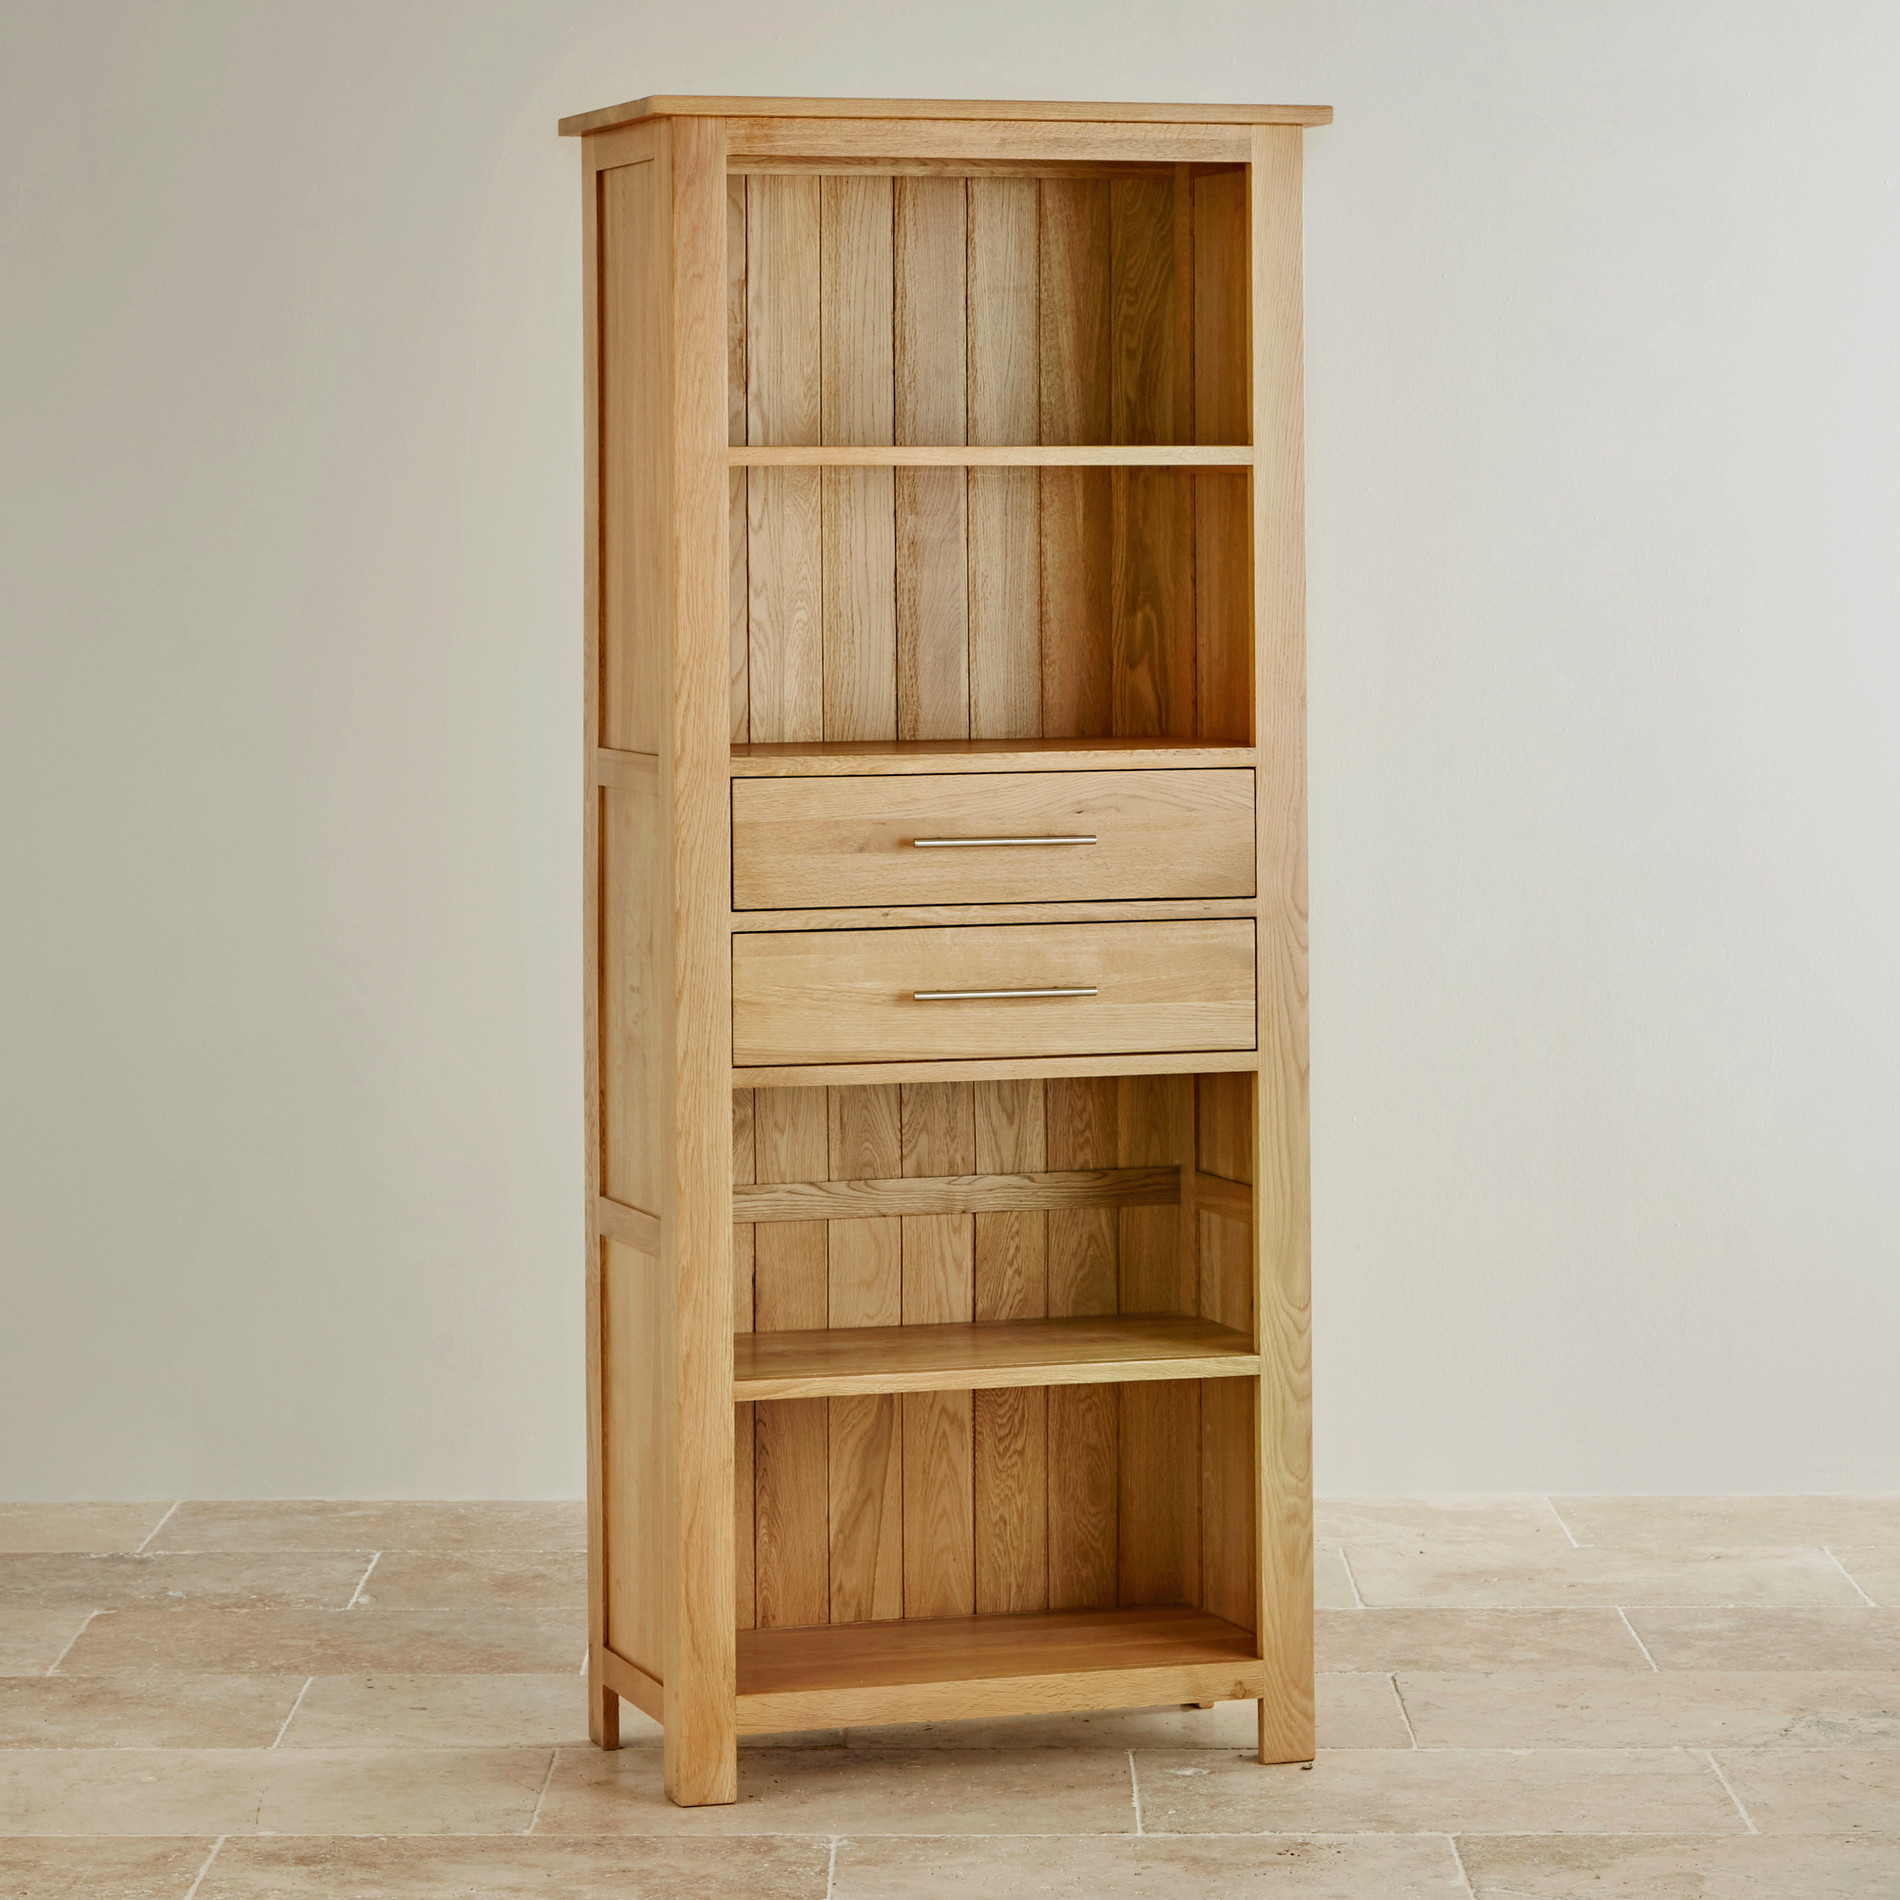 Photos of Rivermead Natural Solid Oak Bookcase solid oak bookcase